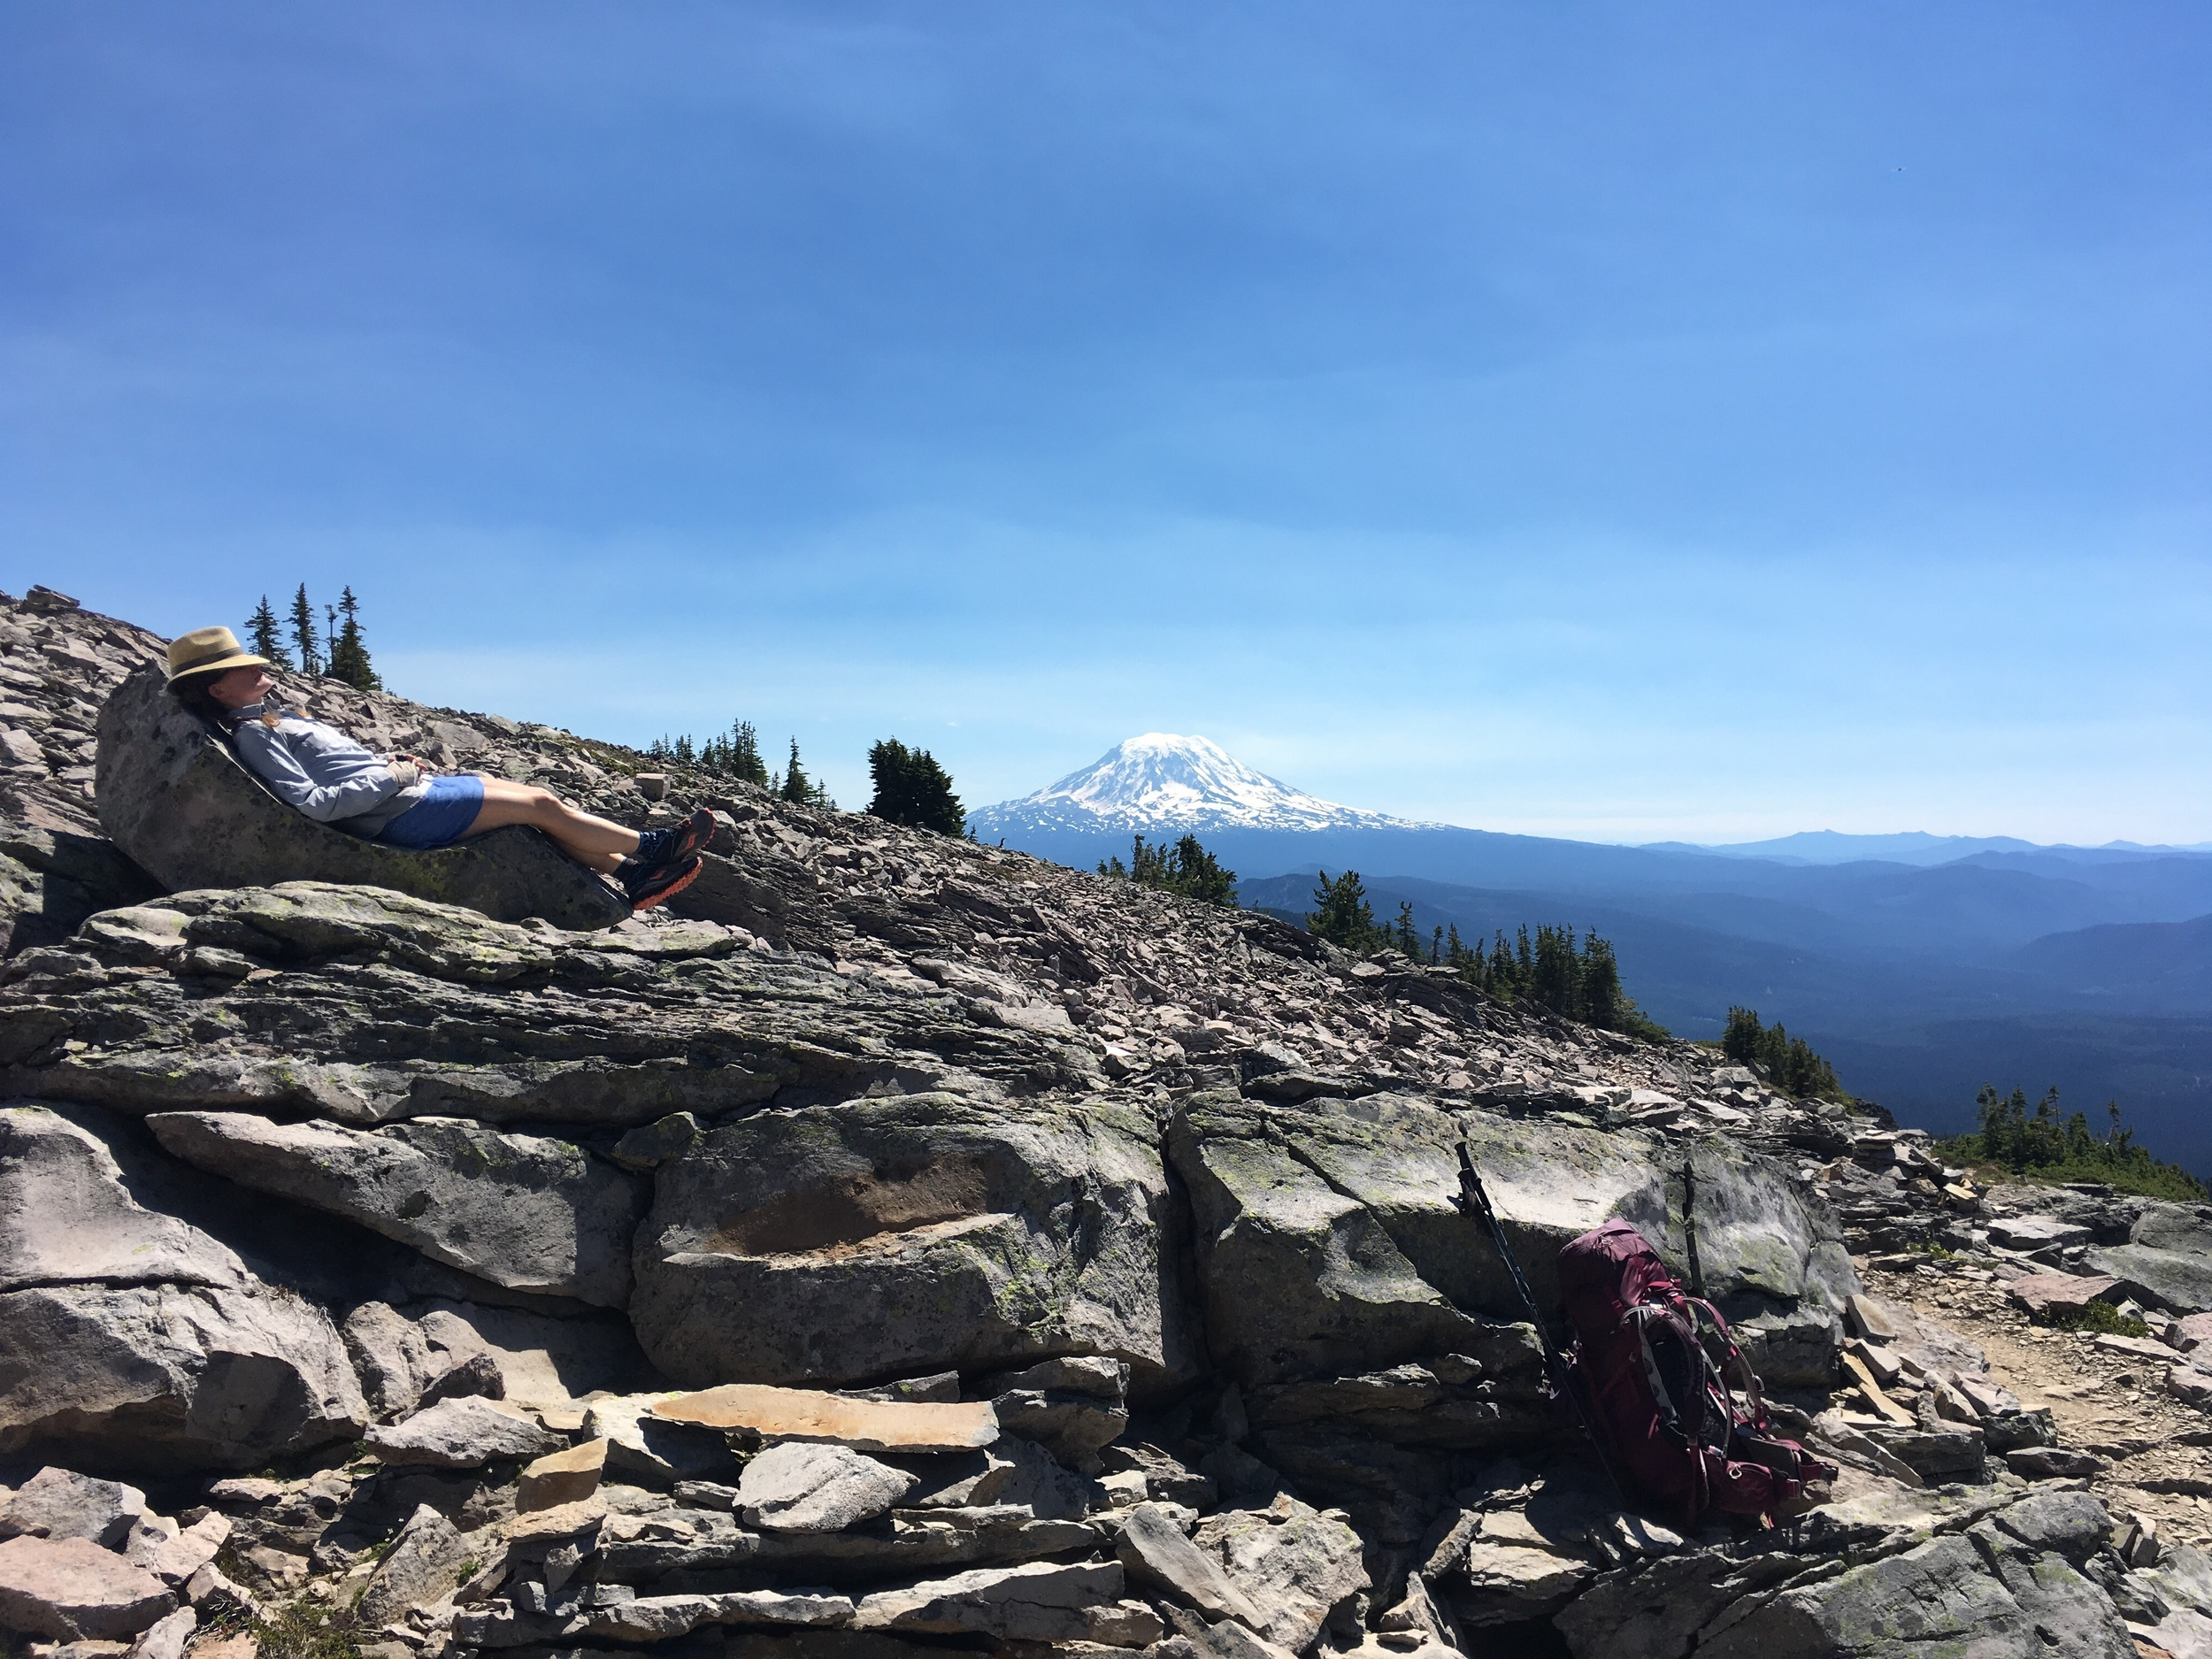 Mountain lounge chair, with a view of Mt Adams